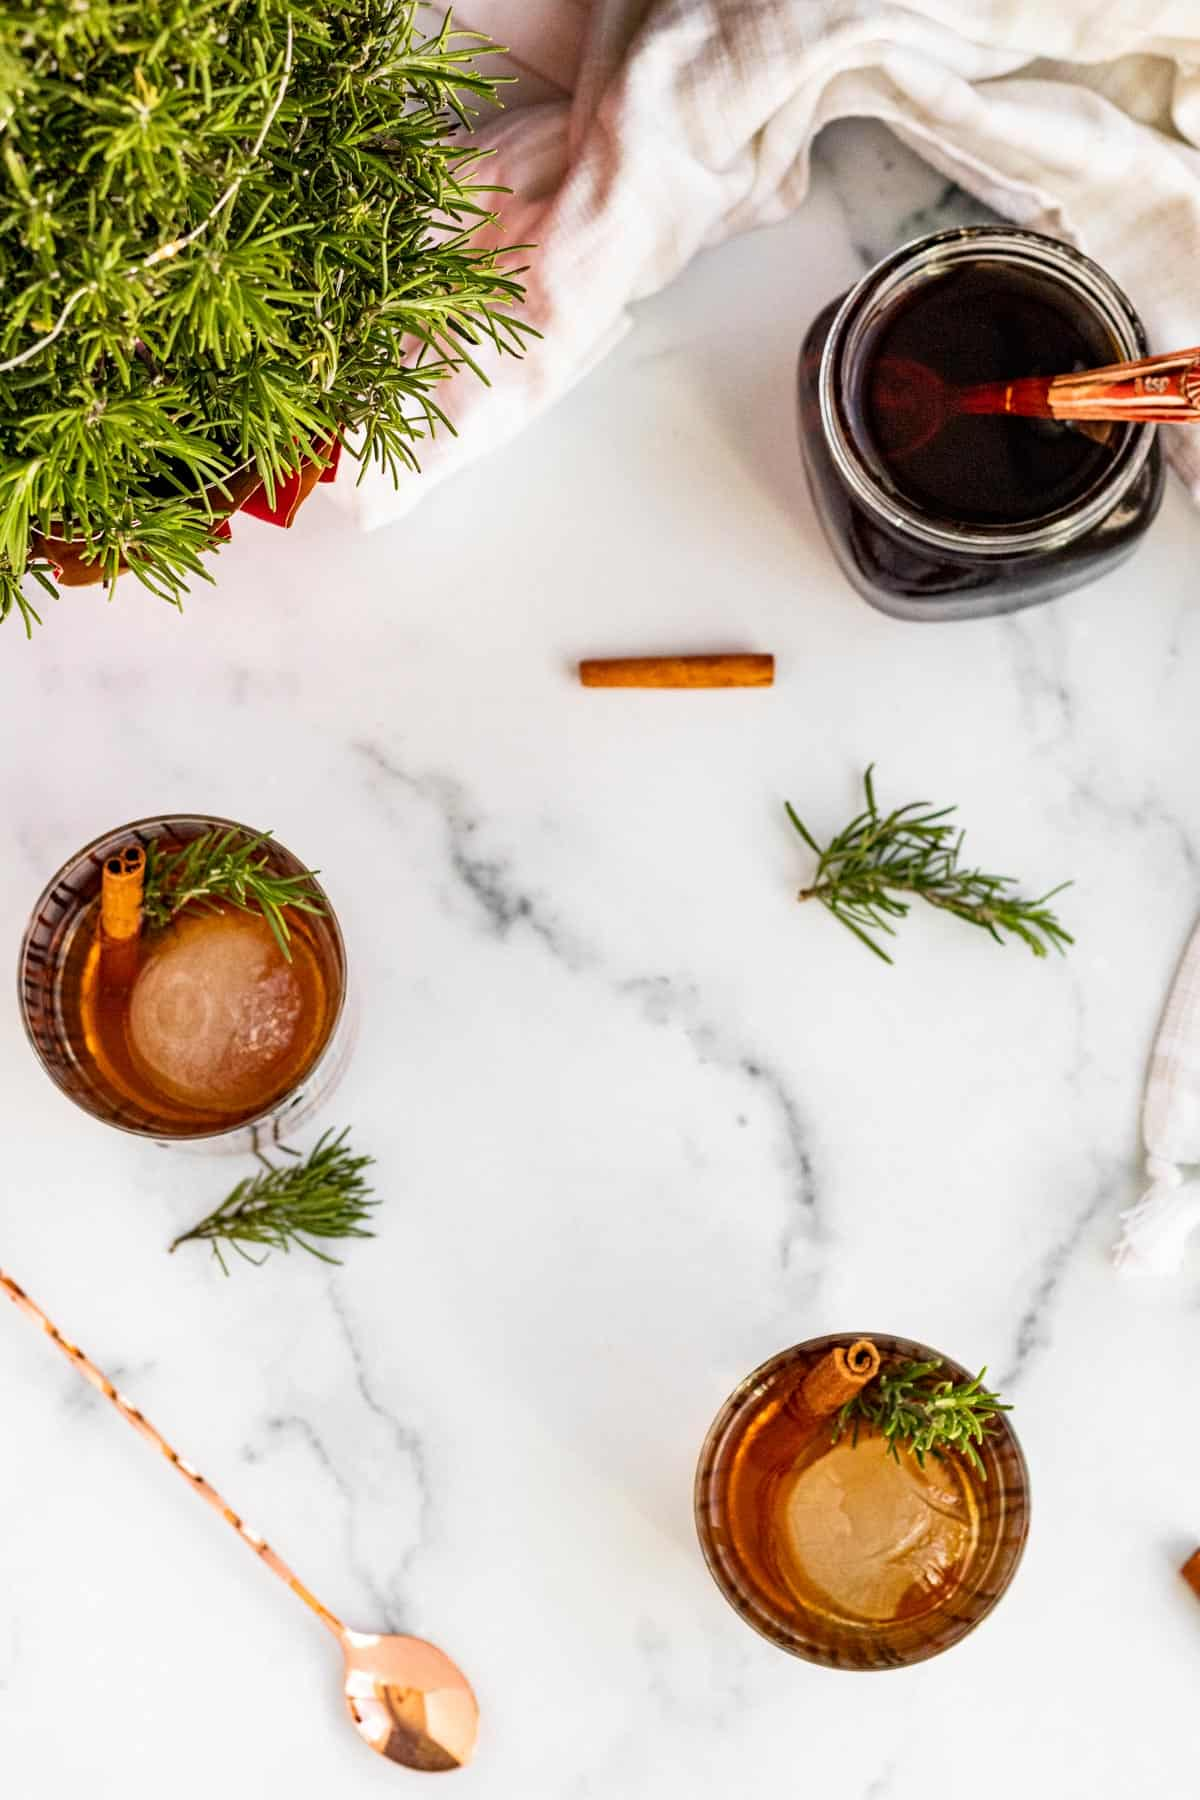 overhead view of 2 bourbon cocktails with sprigs of rosemary and cinnamon sticks for garnish